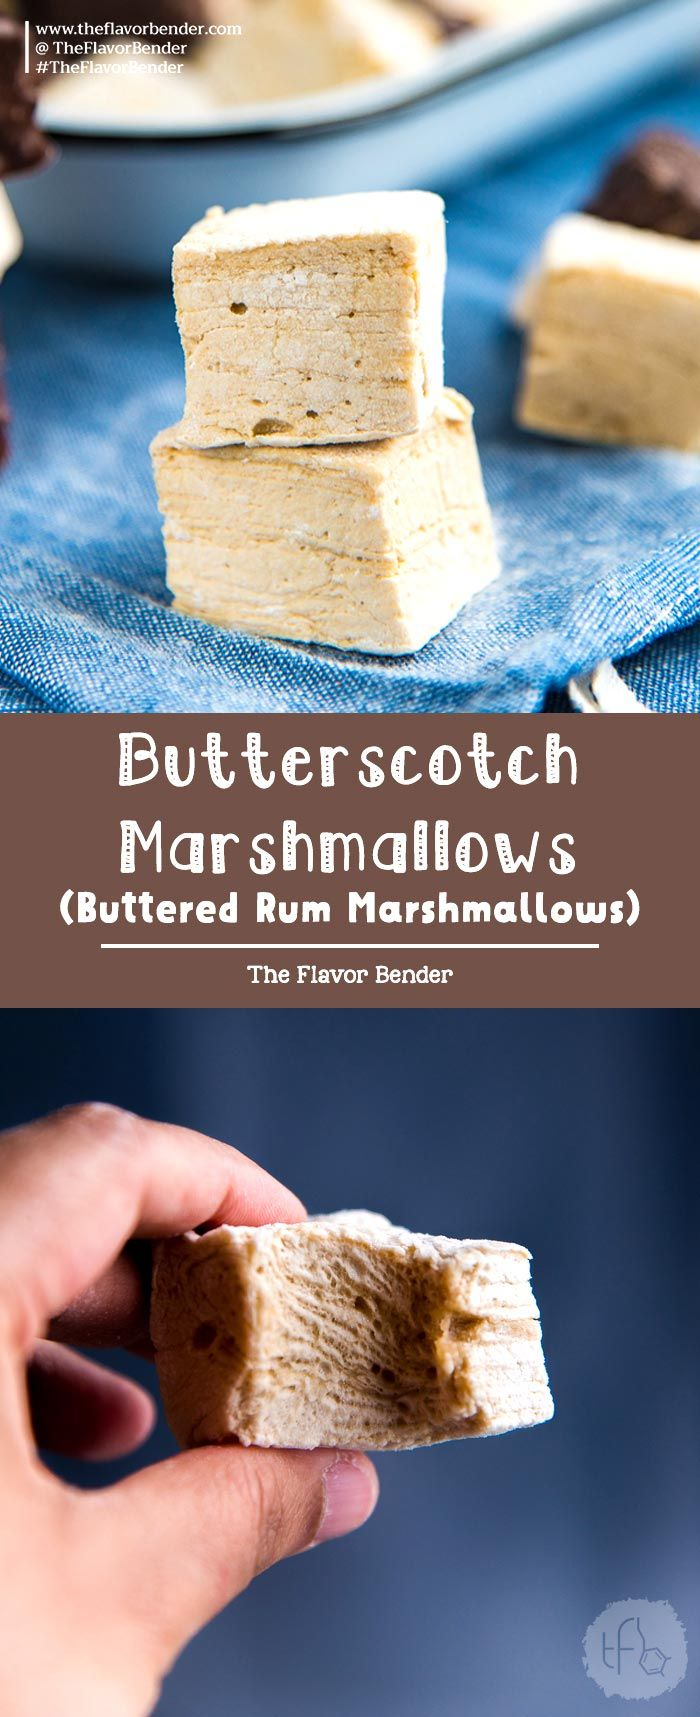 Butterscotch Marshmallows (Buttered Rum Marshmallows) - The Flavor Bender #marshmallows